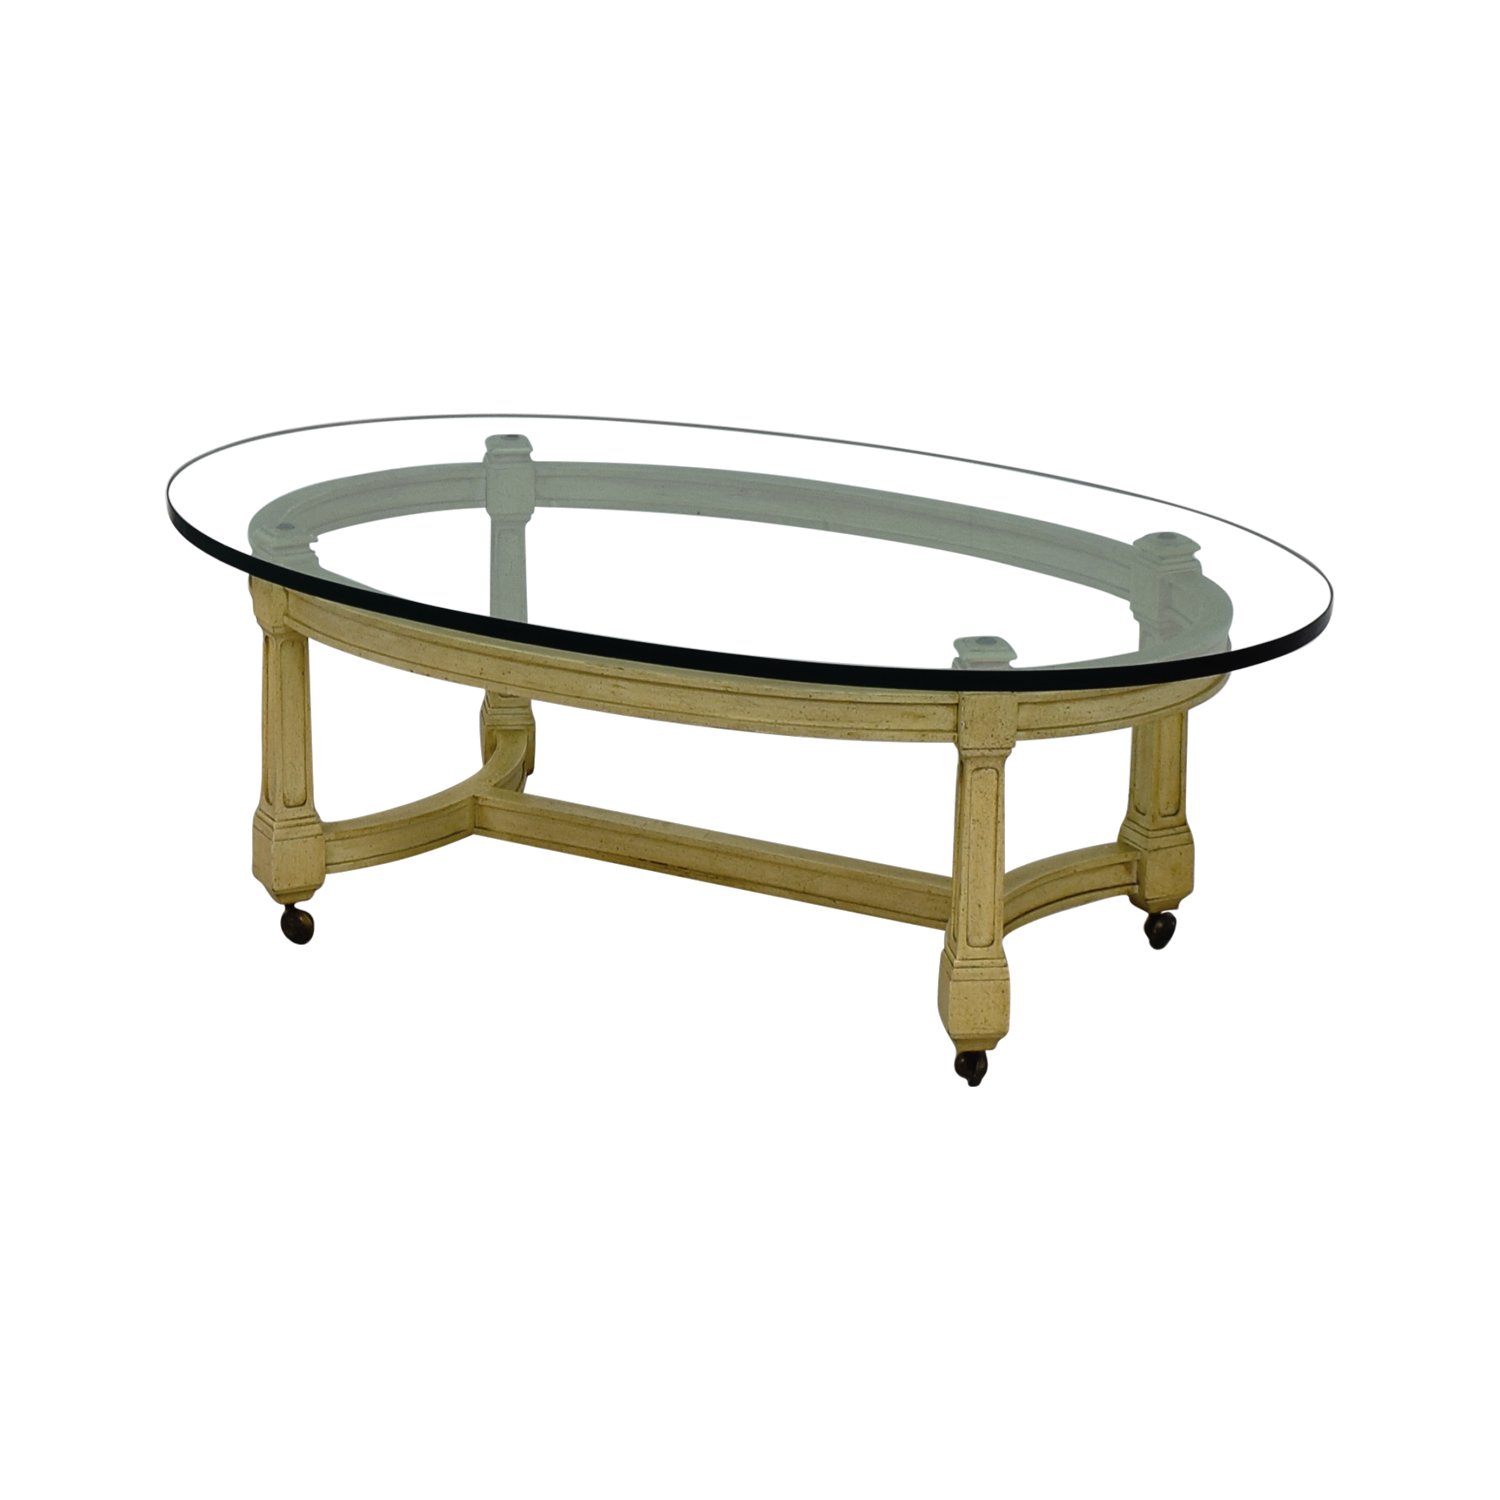 75 off off white and glass oval coffee table on castors tables Used glass coffee table